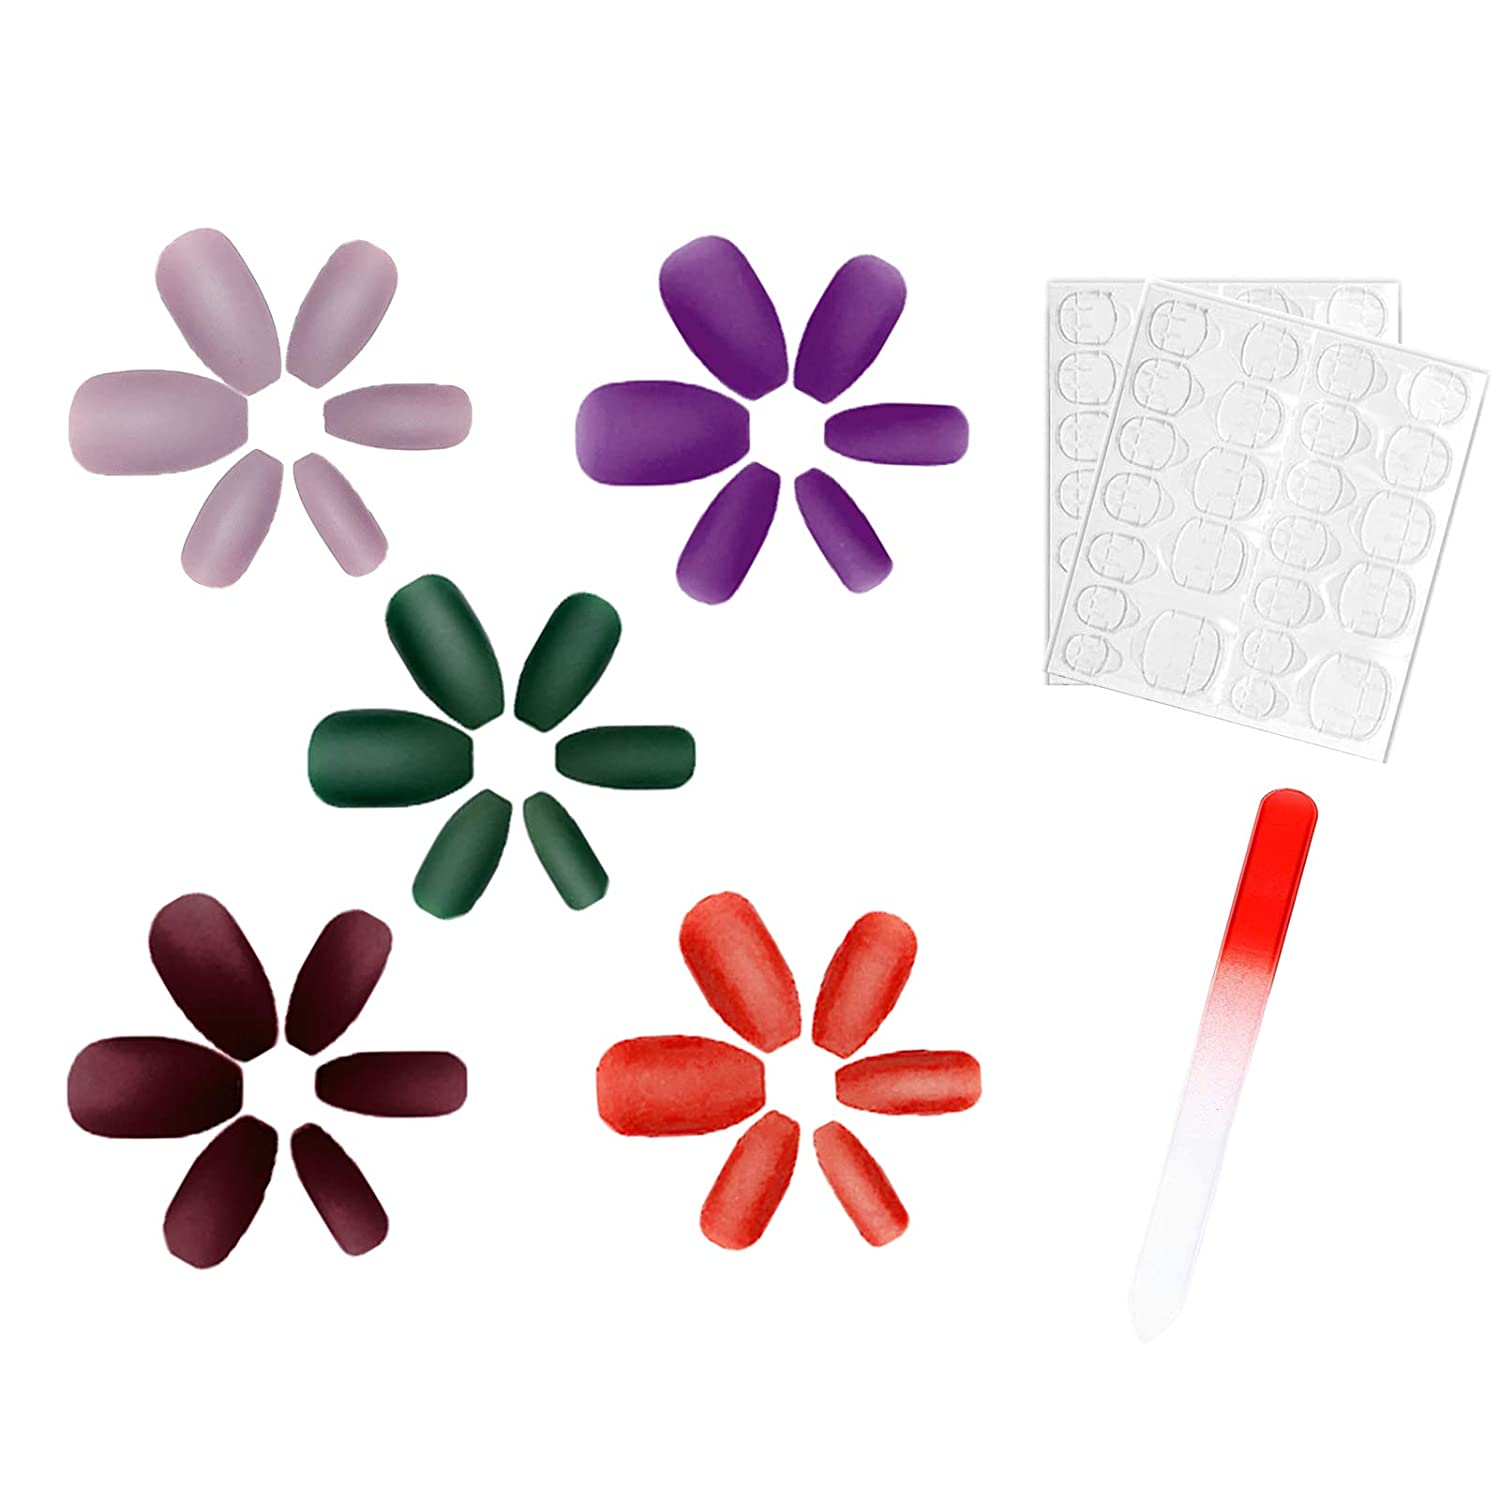 120PCS Matte Color False Nails with Designs, Ballerina Natural Coffin Press on Nails, Long Fake Nails for Women and Girls, 5 styles of colors with Nail File and Nail Adhesive Tabs